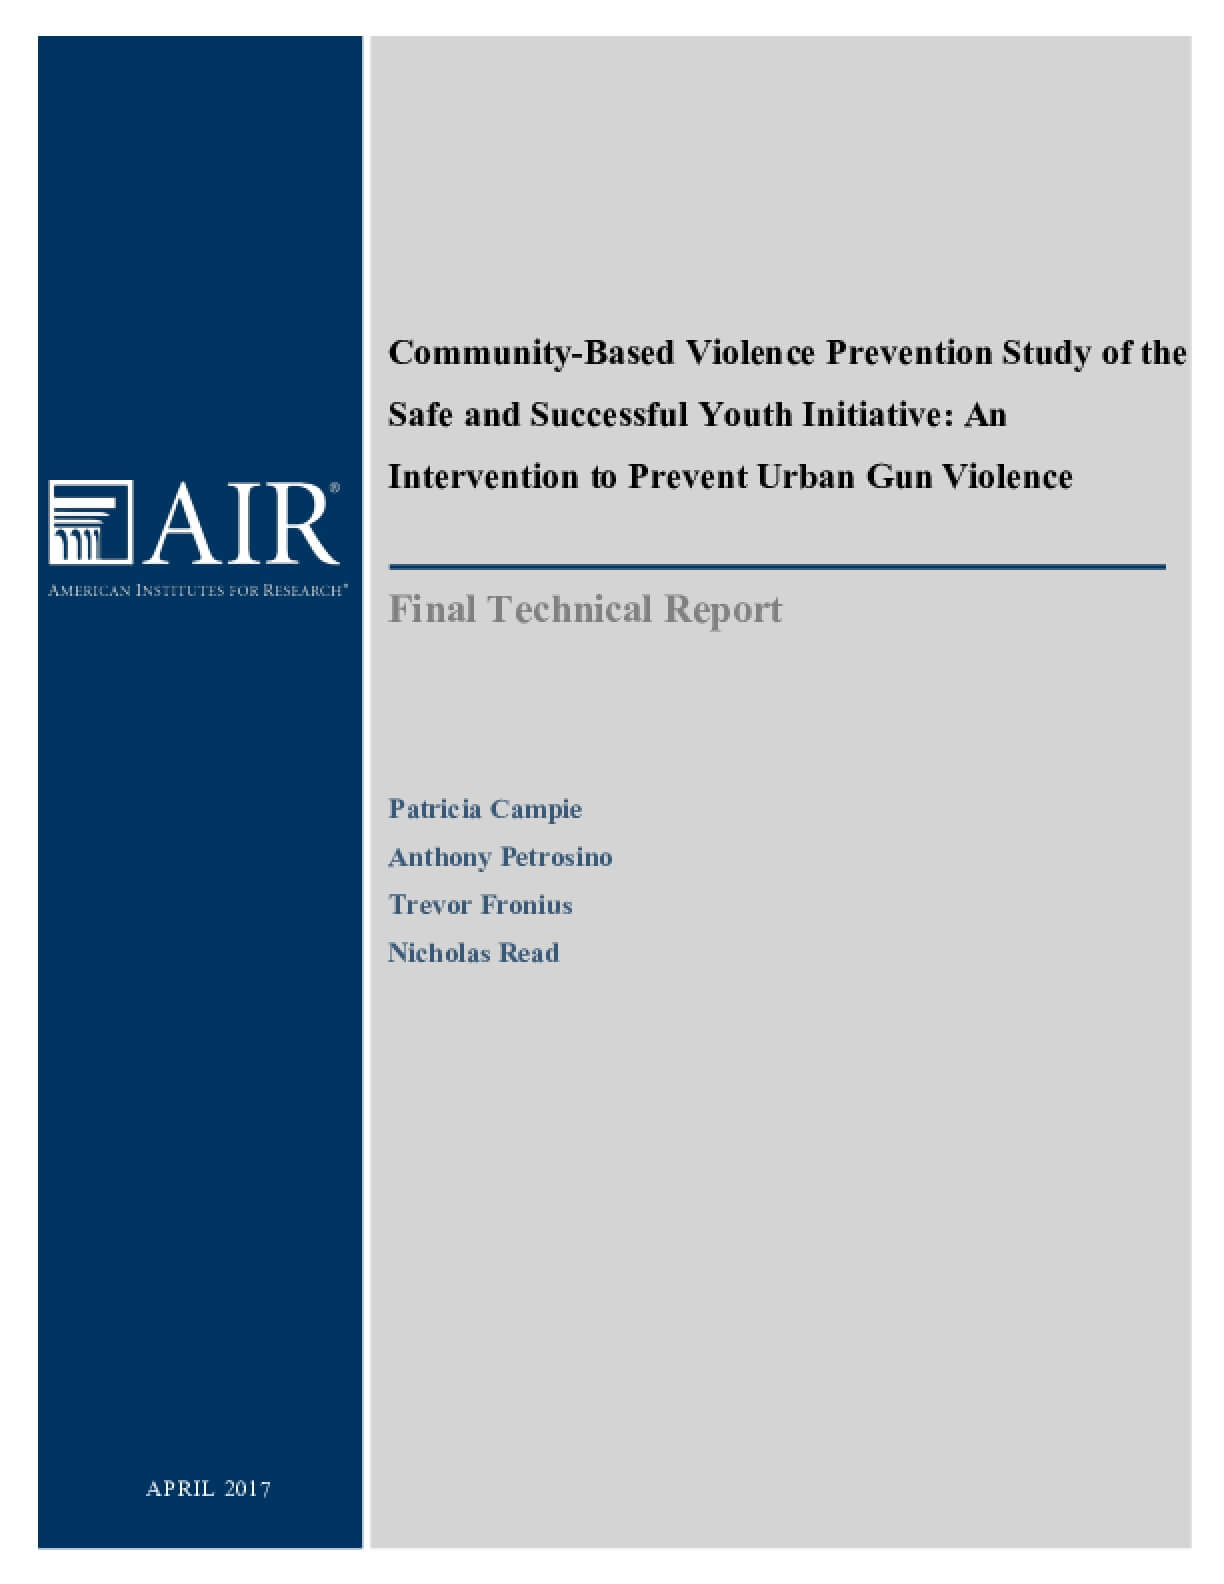 Community-Based Violence Prevention Study of the Safe and Successful Youth Initiative: An Intervention To Prevent Urban Gun Violence